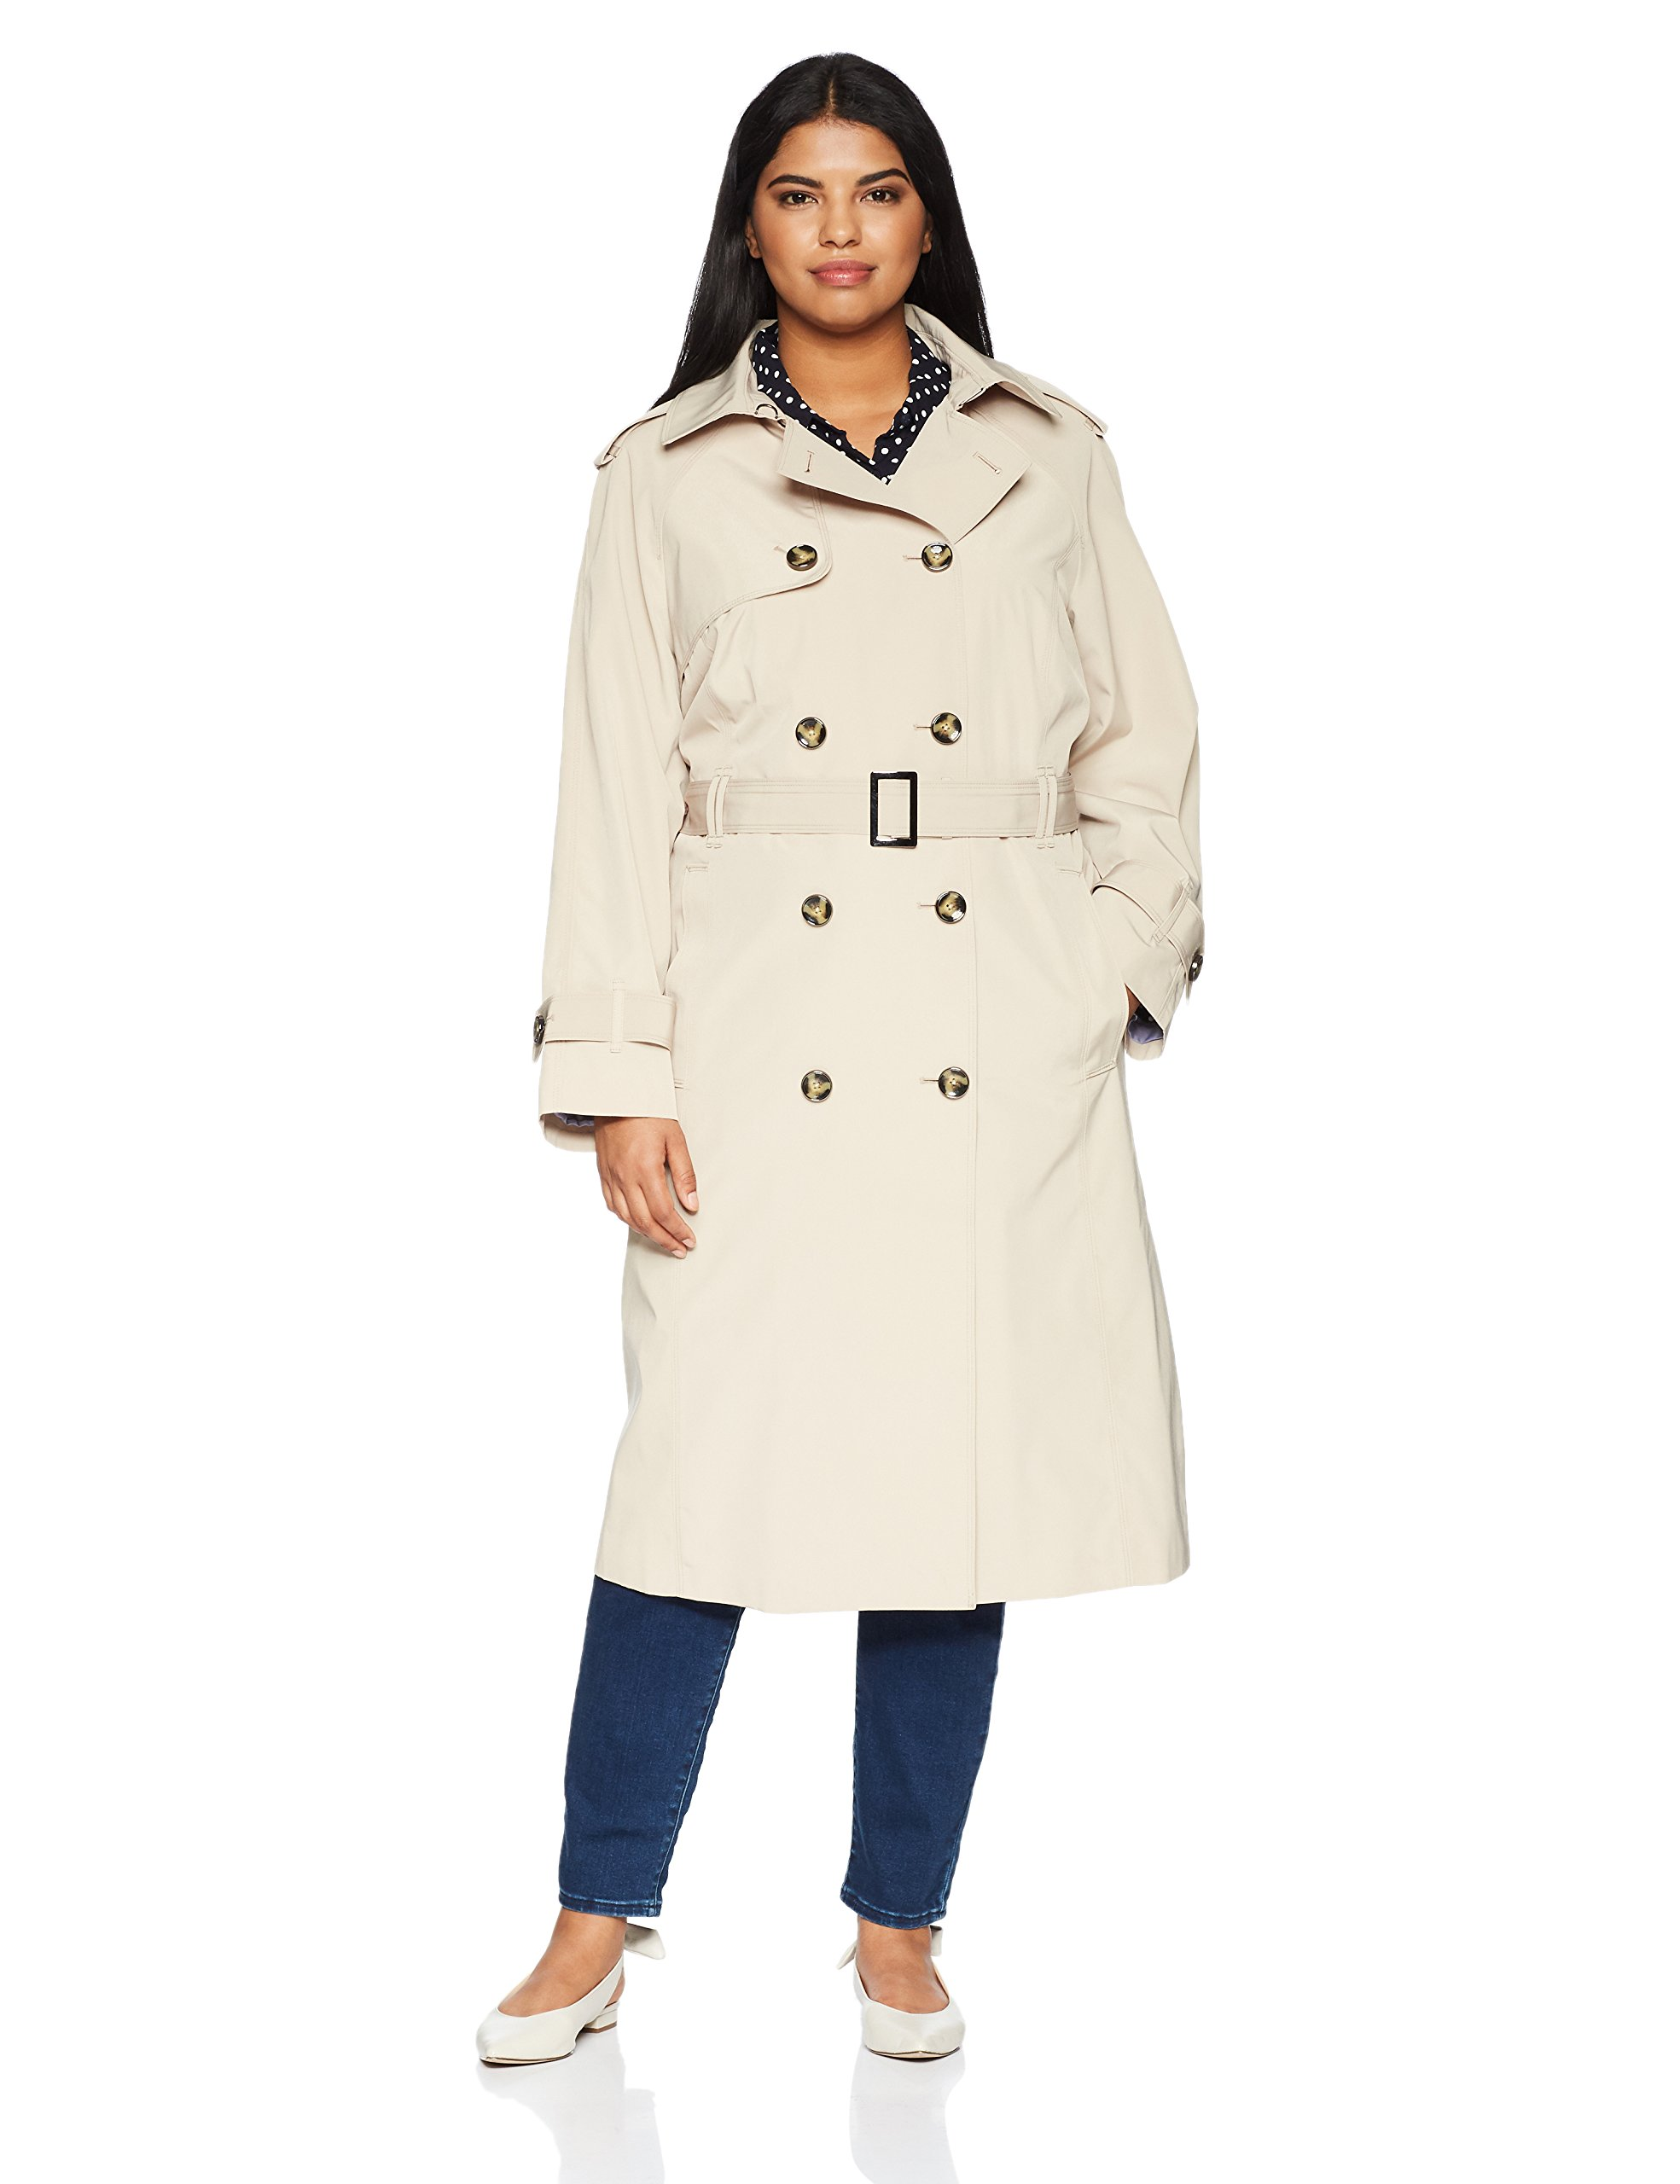 650de778fe0 Amazon.com  London Fog Women s Midi-Length Plus Size Trench Coat ...